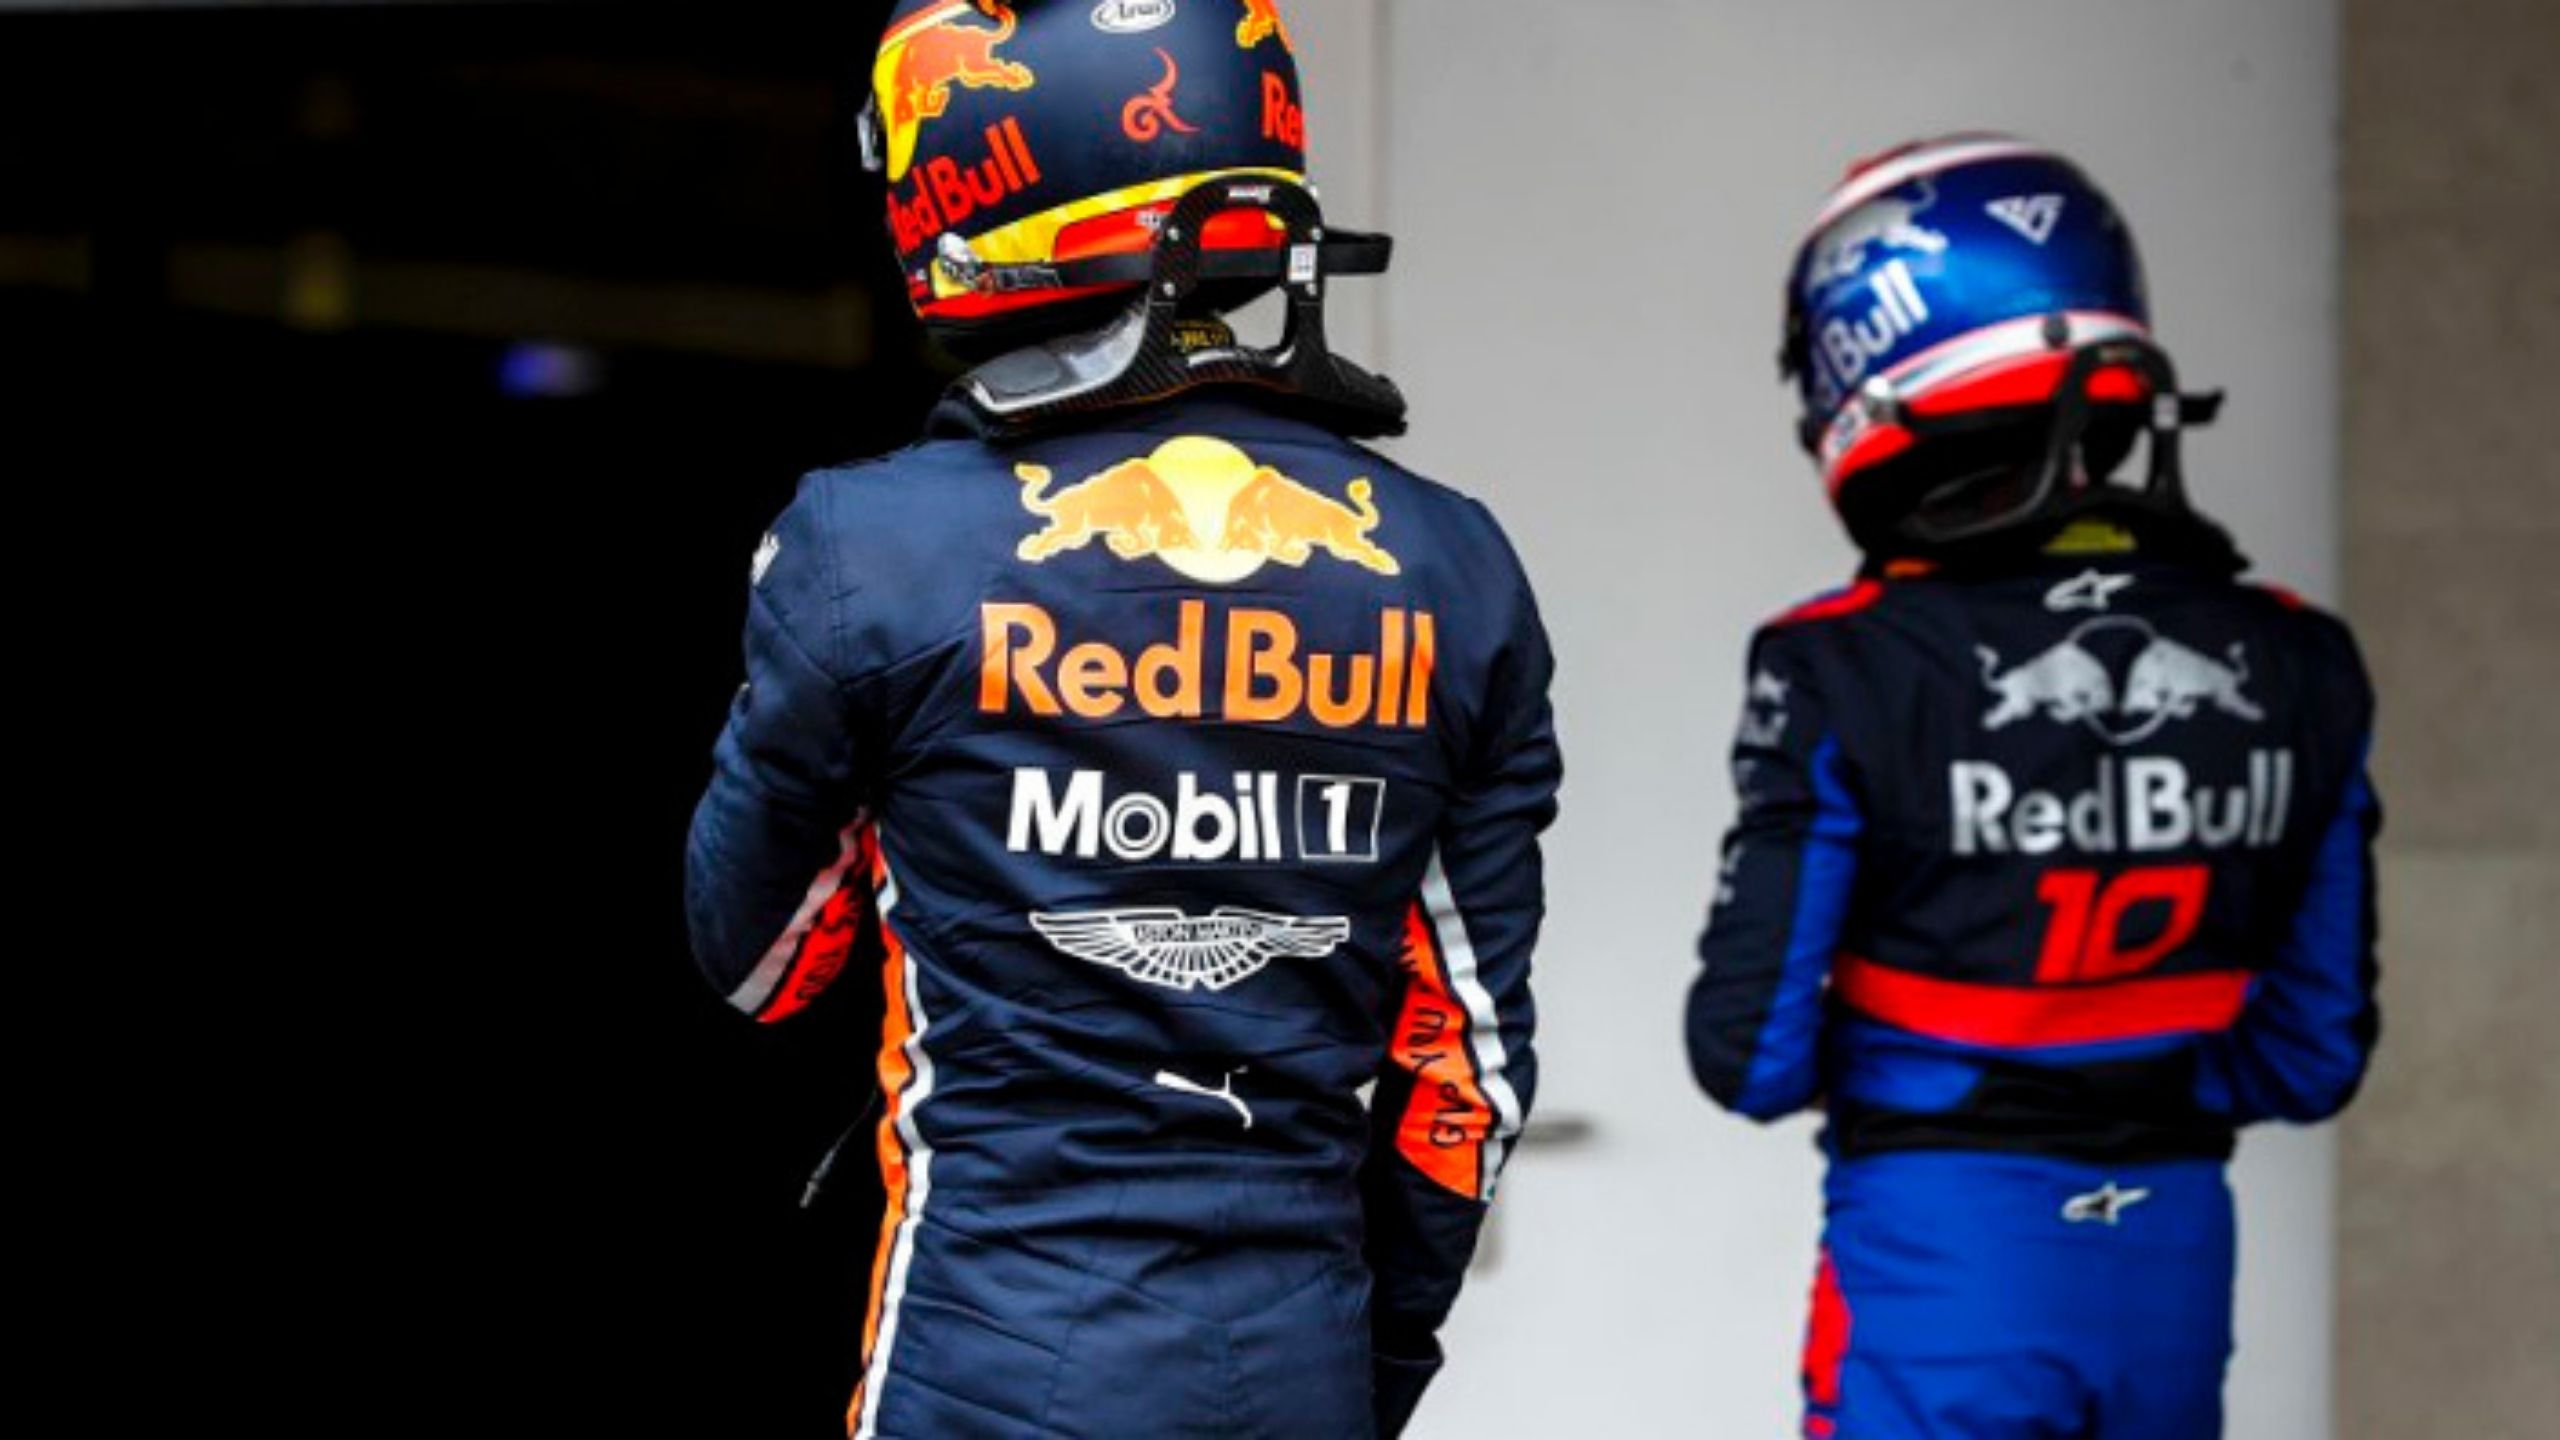 """""""DTM is a great series with highly talented drivers"""" - Red Bull reveal livery of the Ferrari Alex Albon will drive"""